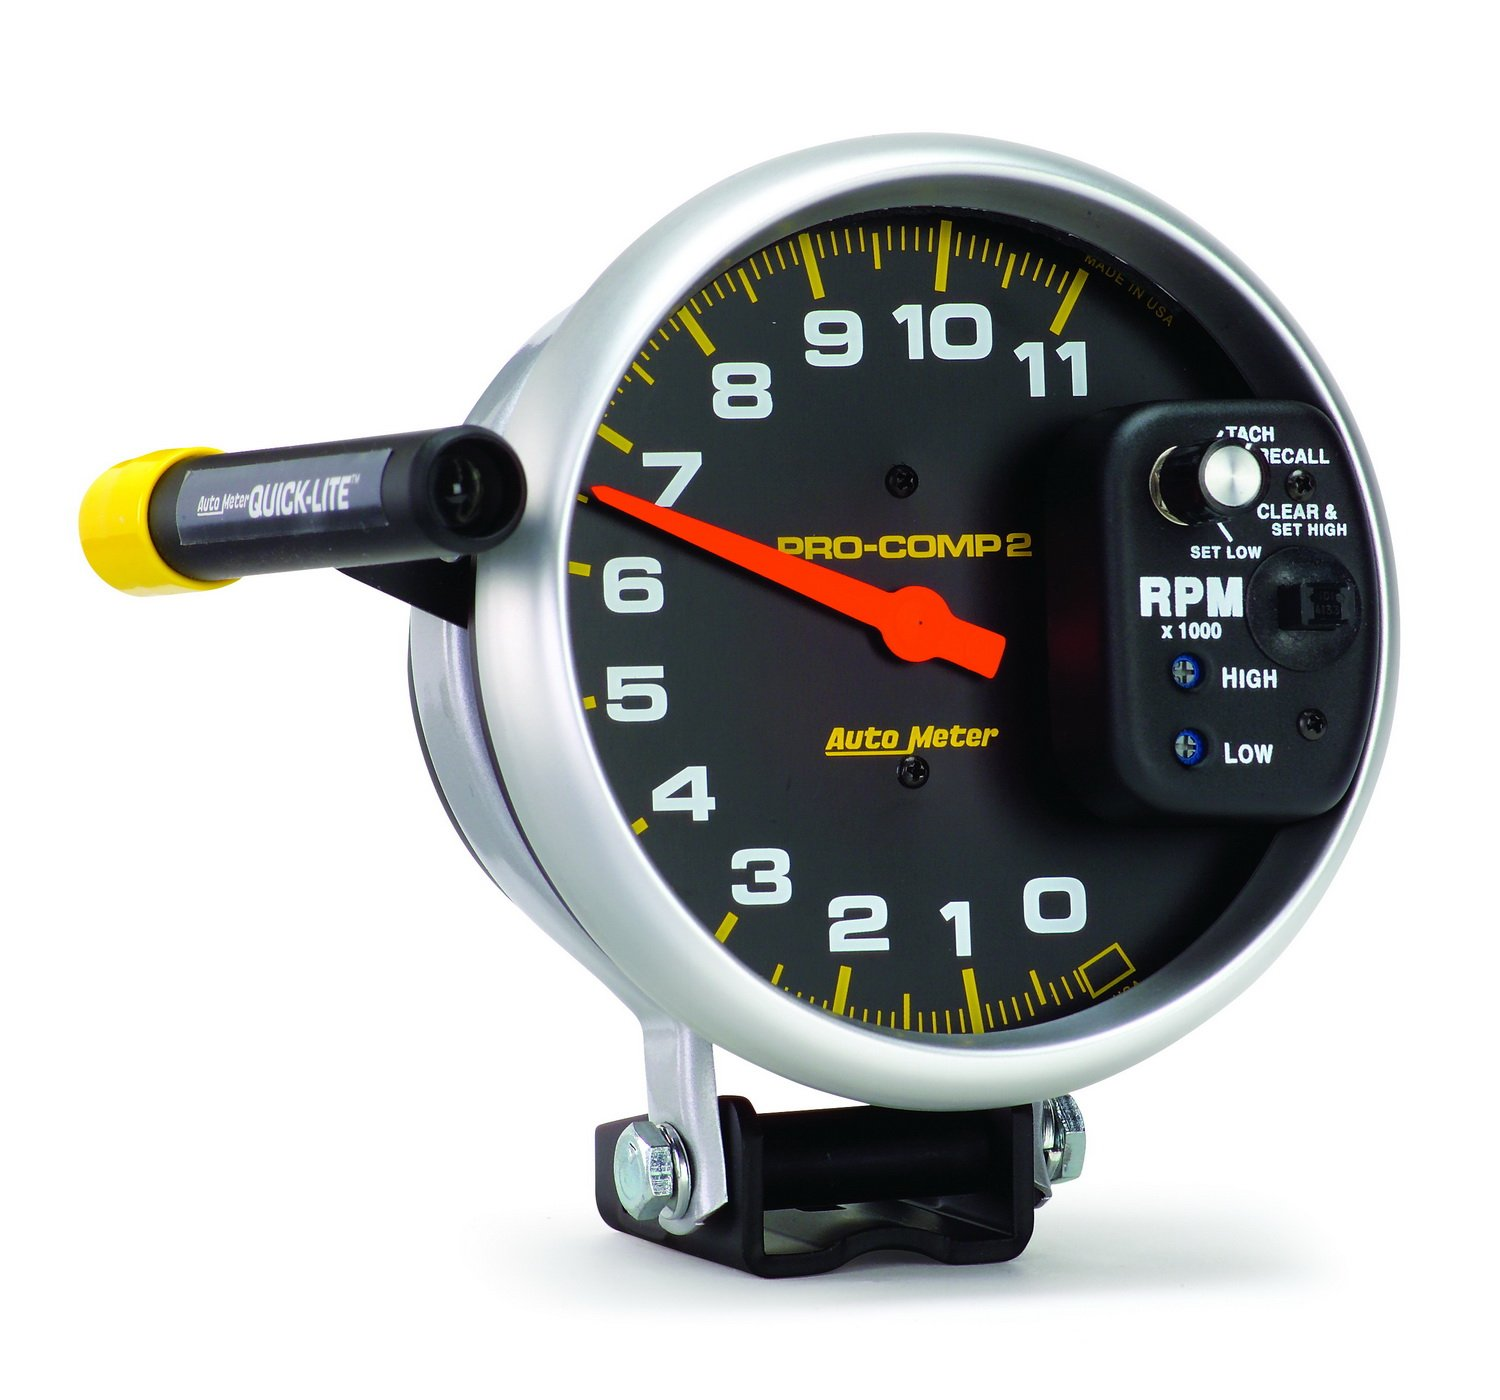 Amazon.com: Auto Meter 6857 Pro-Comp Single Range Tachometer: Automotive